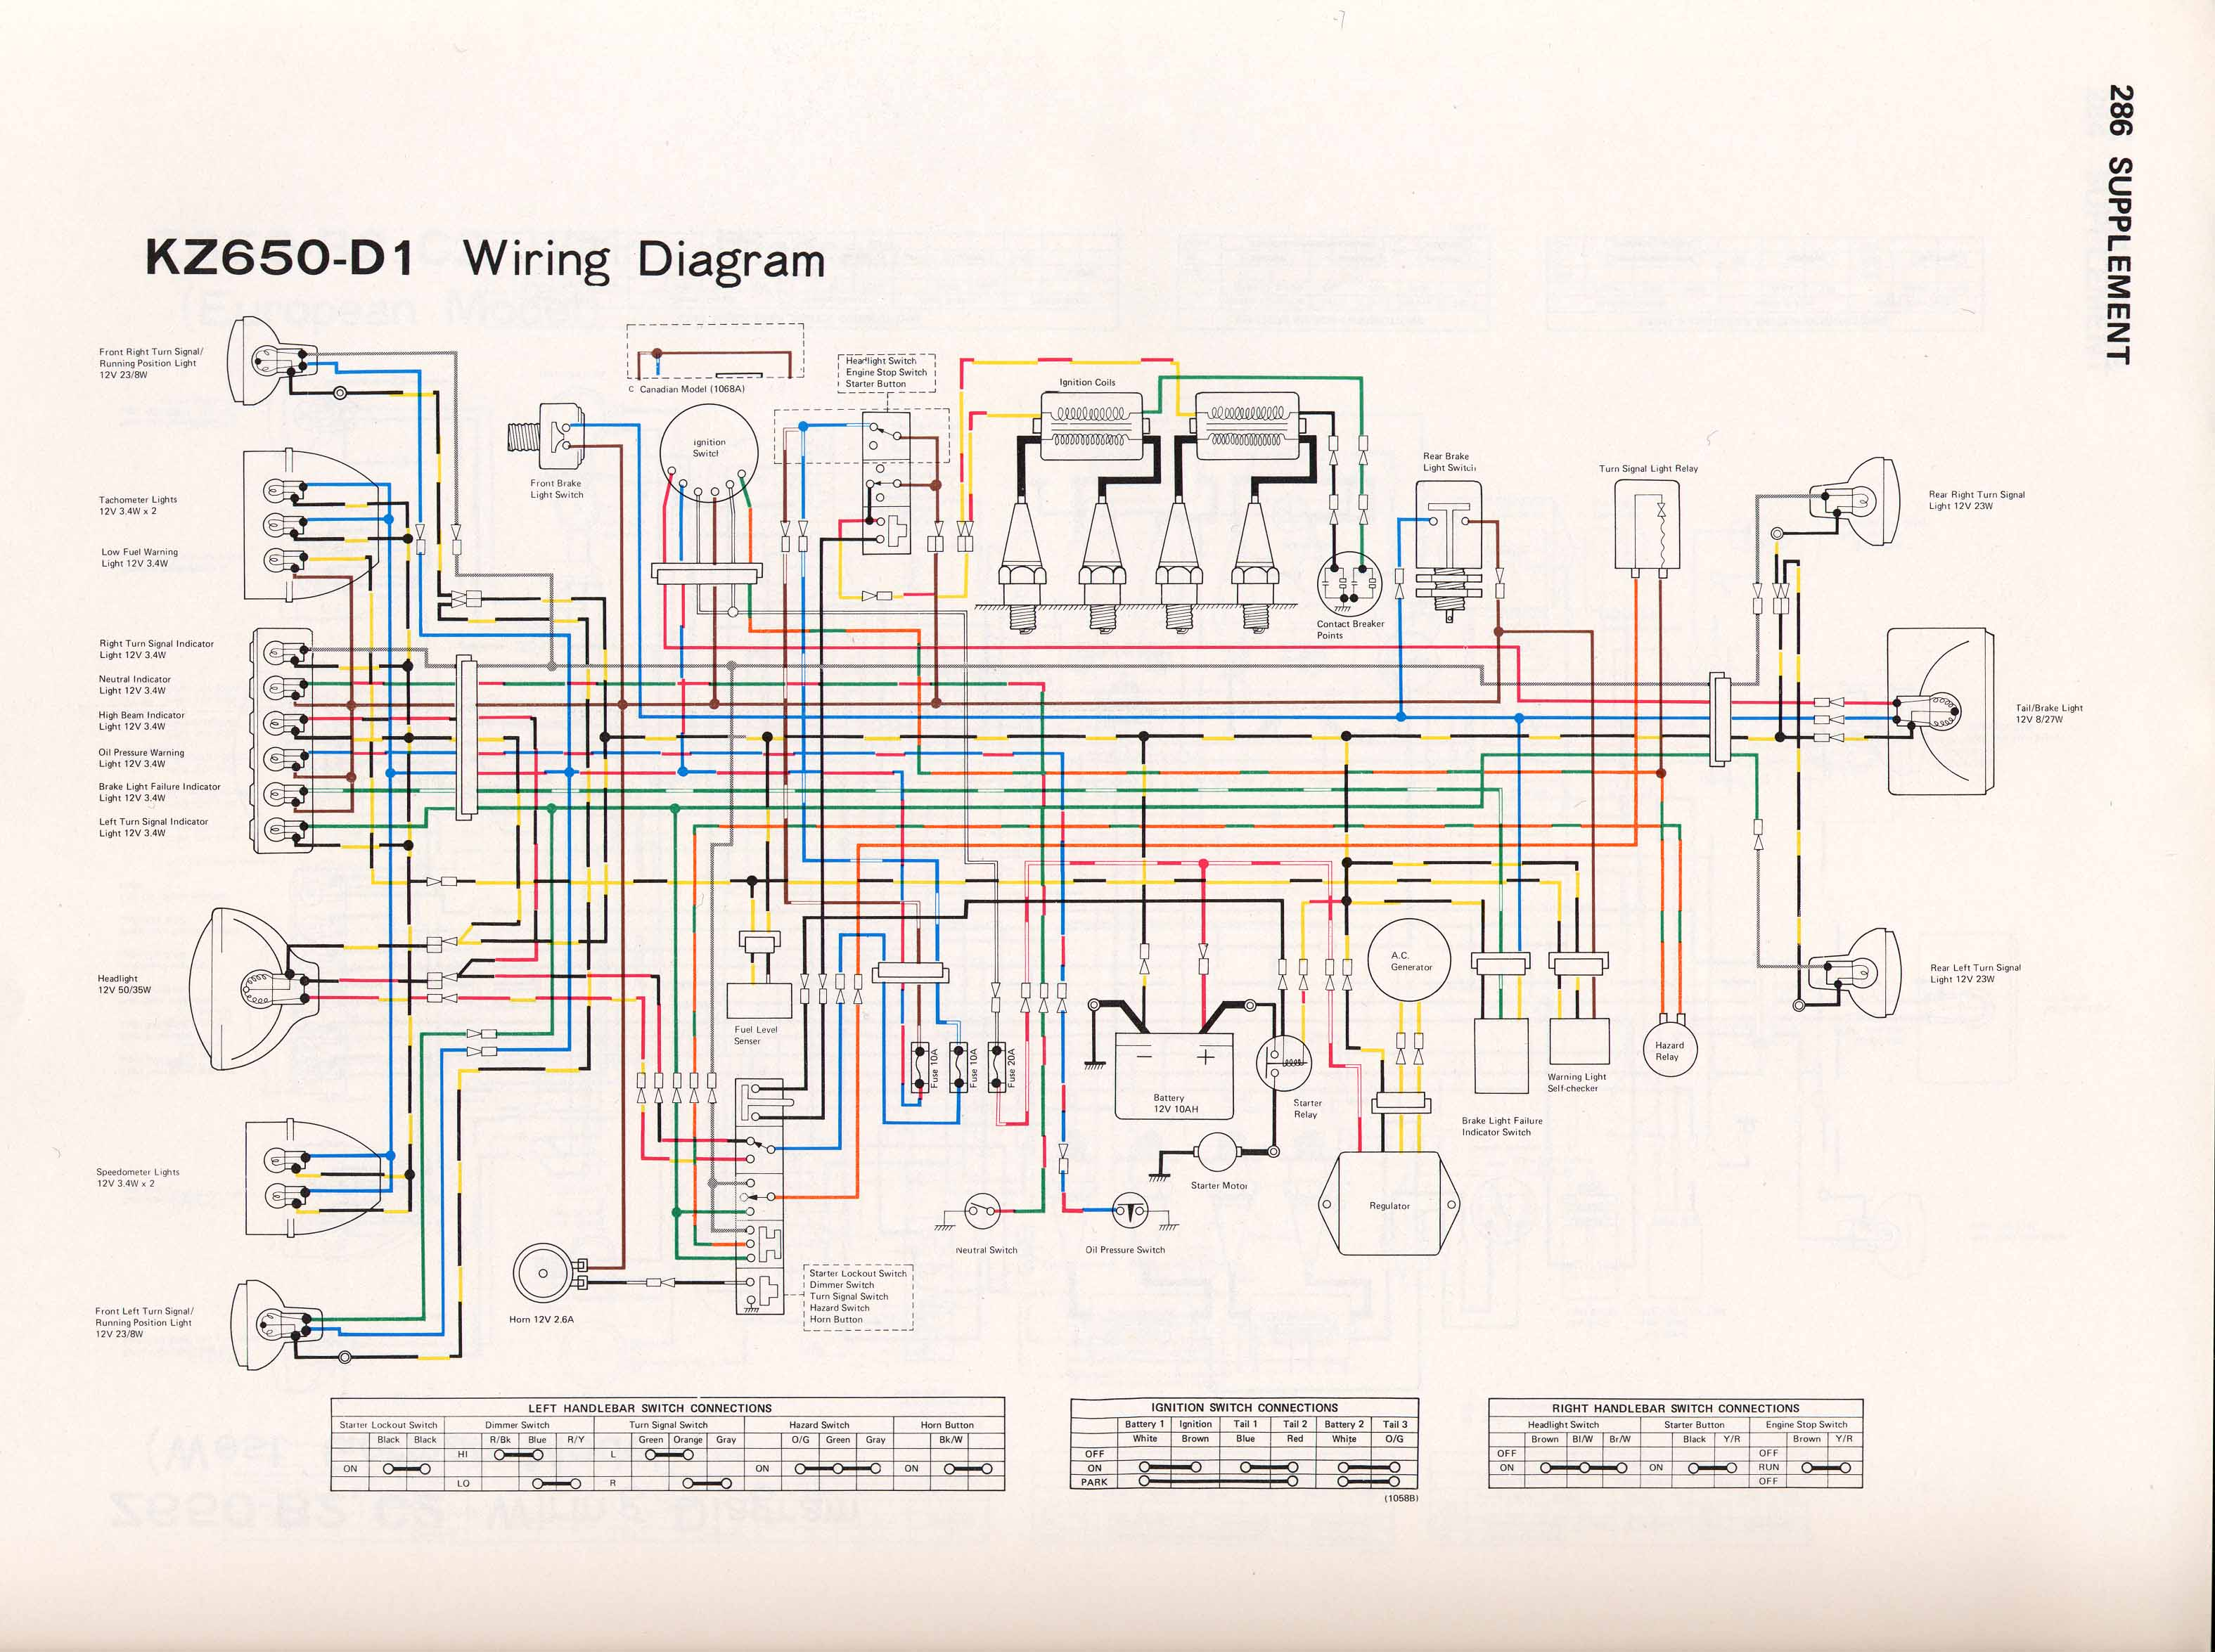 E1 Wiring Diagram Reinvent Your Kawasaki Zzr 400 Kz650 Info Diagrams Rh Zx9r E